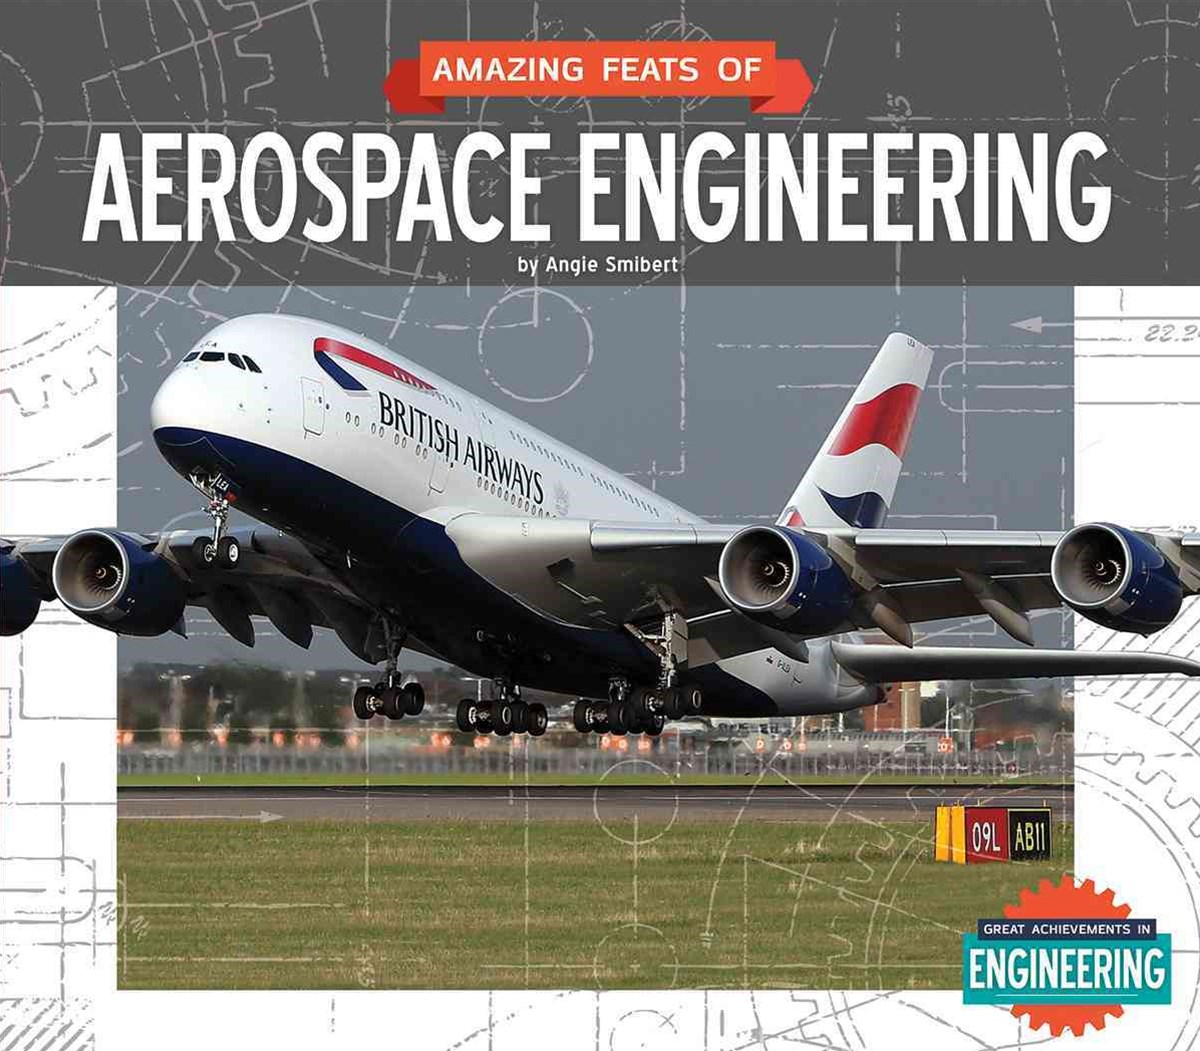 Amazing Feats of Aerospace Engineering